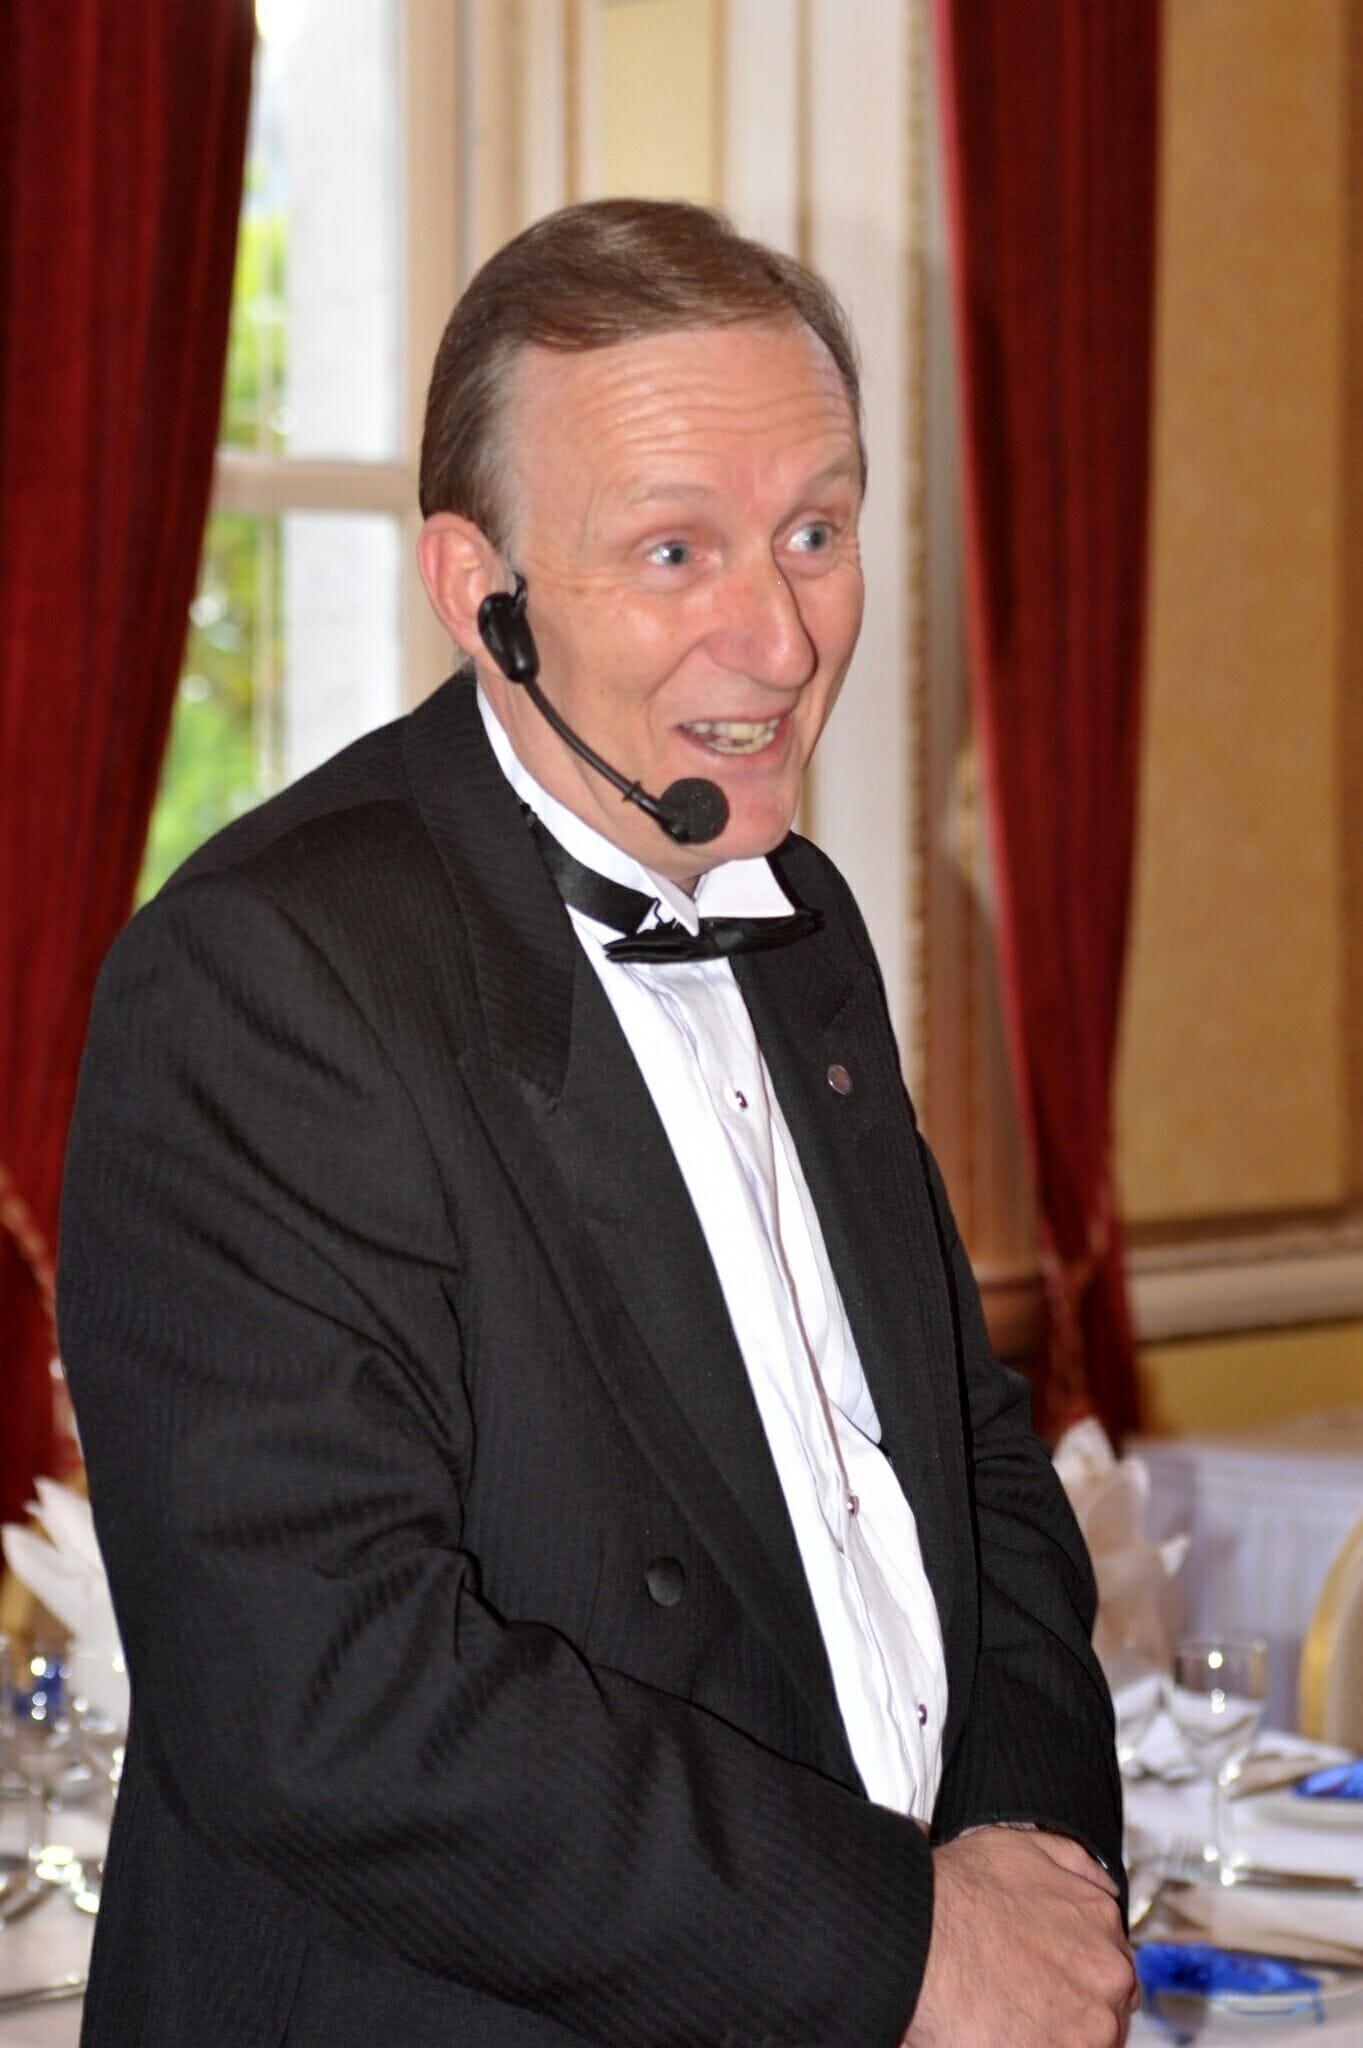 Fundraising Auctioneer Hampshire OZ